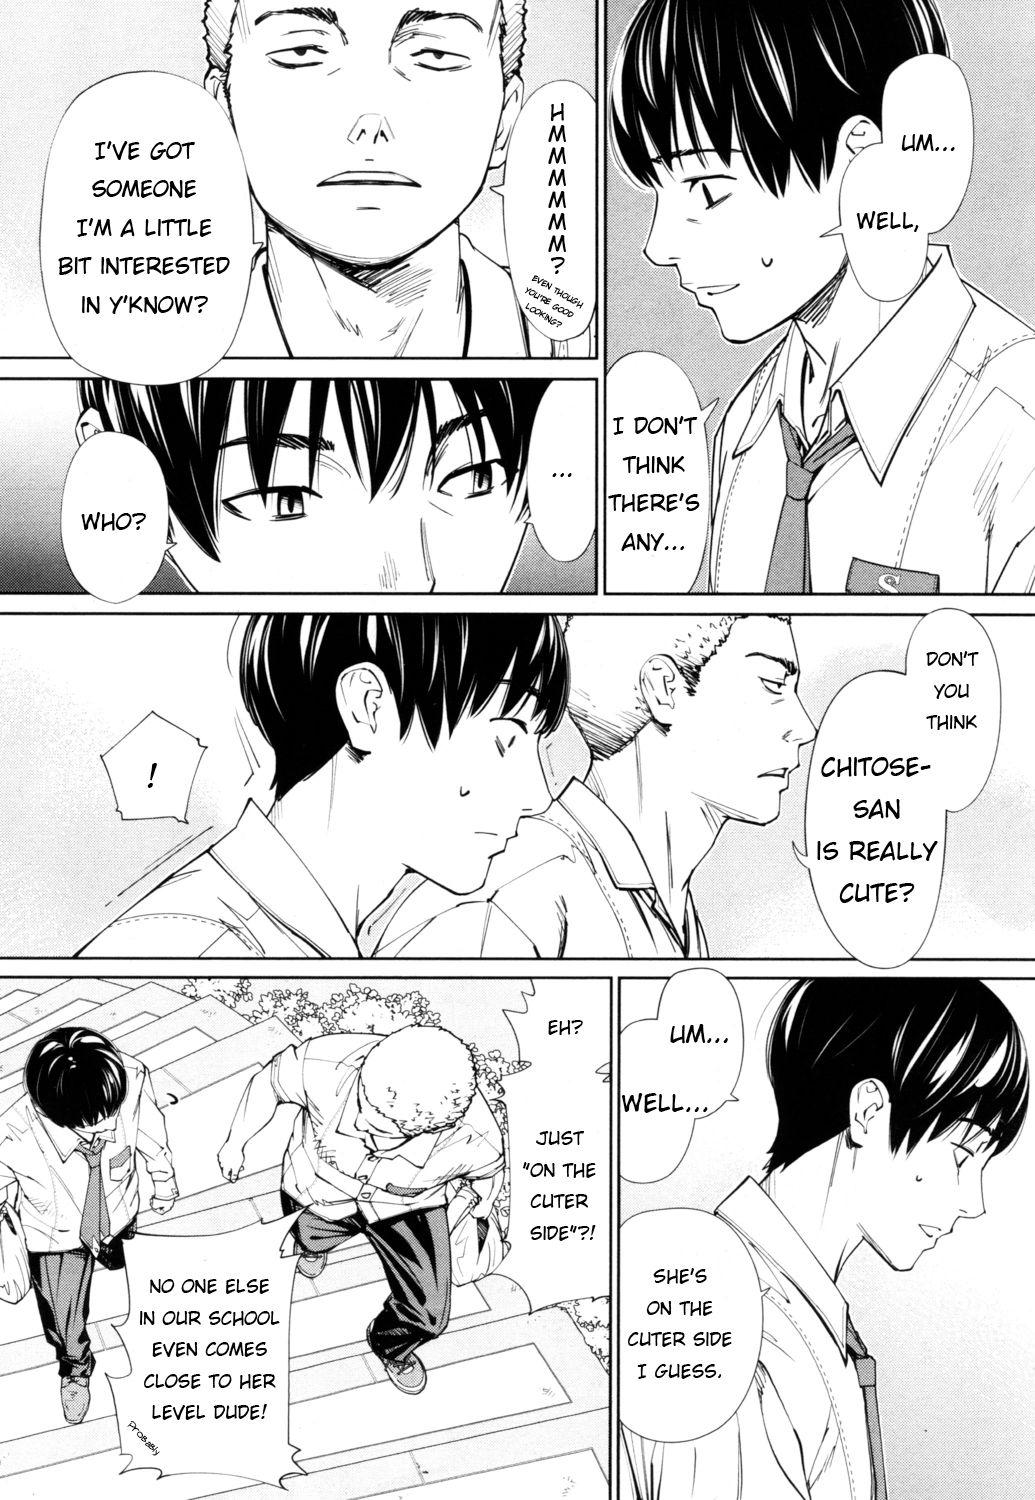 Chitose Ch. 1 23